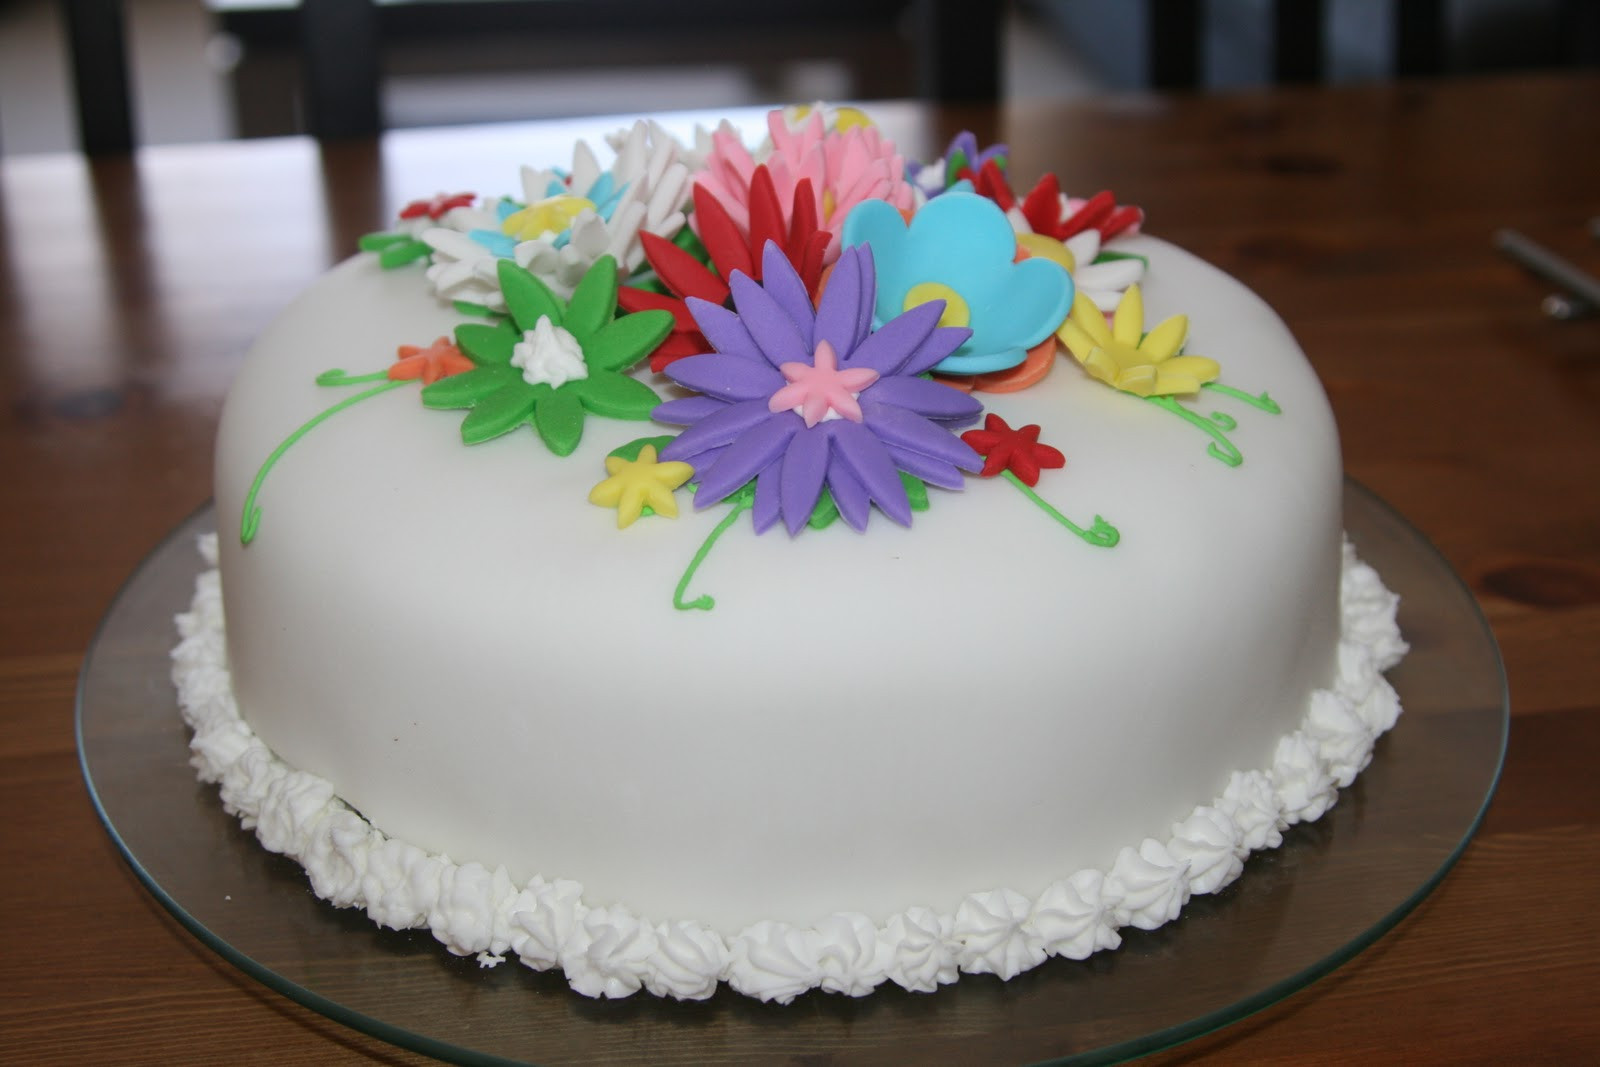 Flowers Birthday Cake  For the Fun of Cooking Flower Birthday Cake